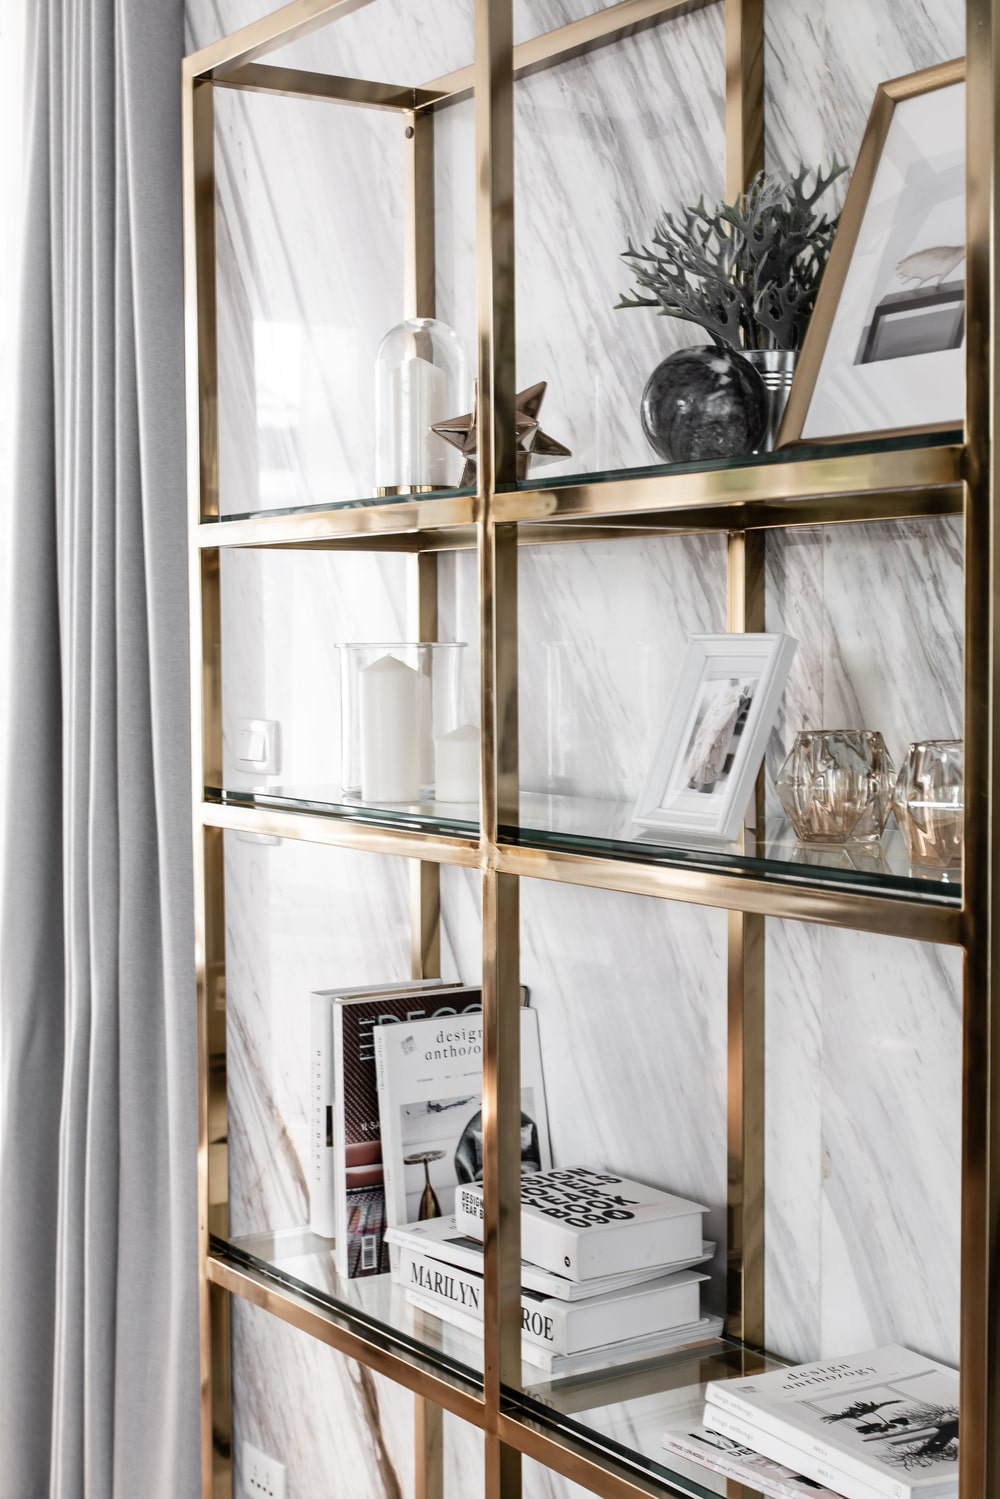 Across from the set of sofas is this wall-mounted metallic shelving system.